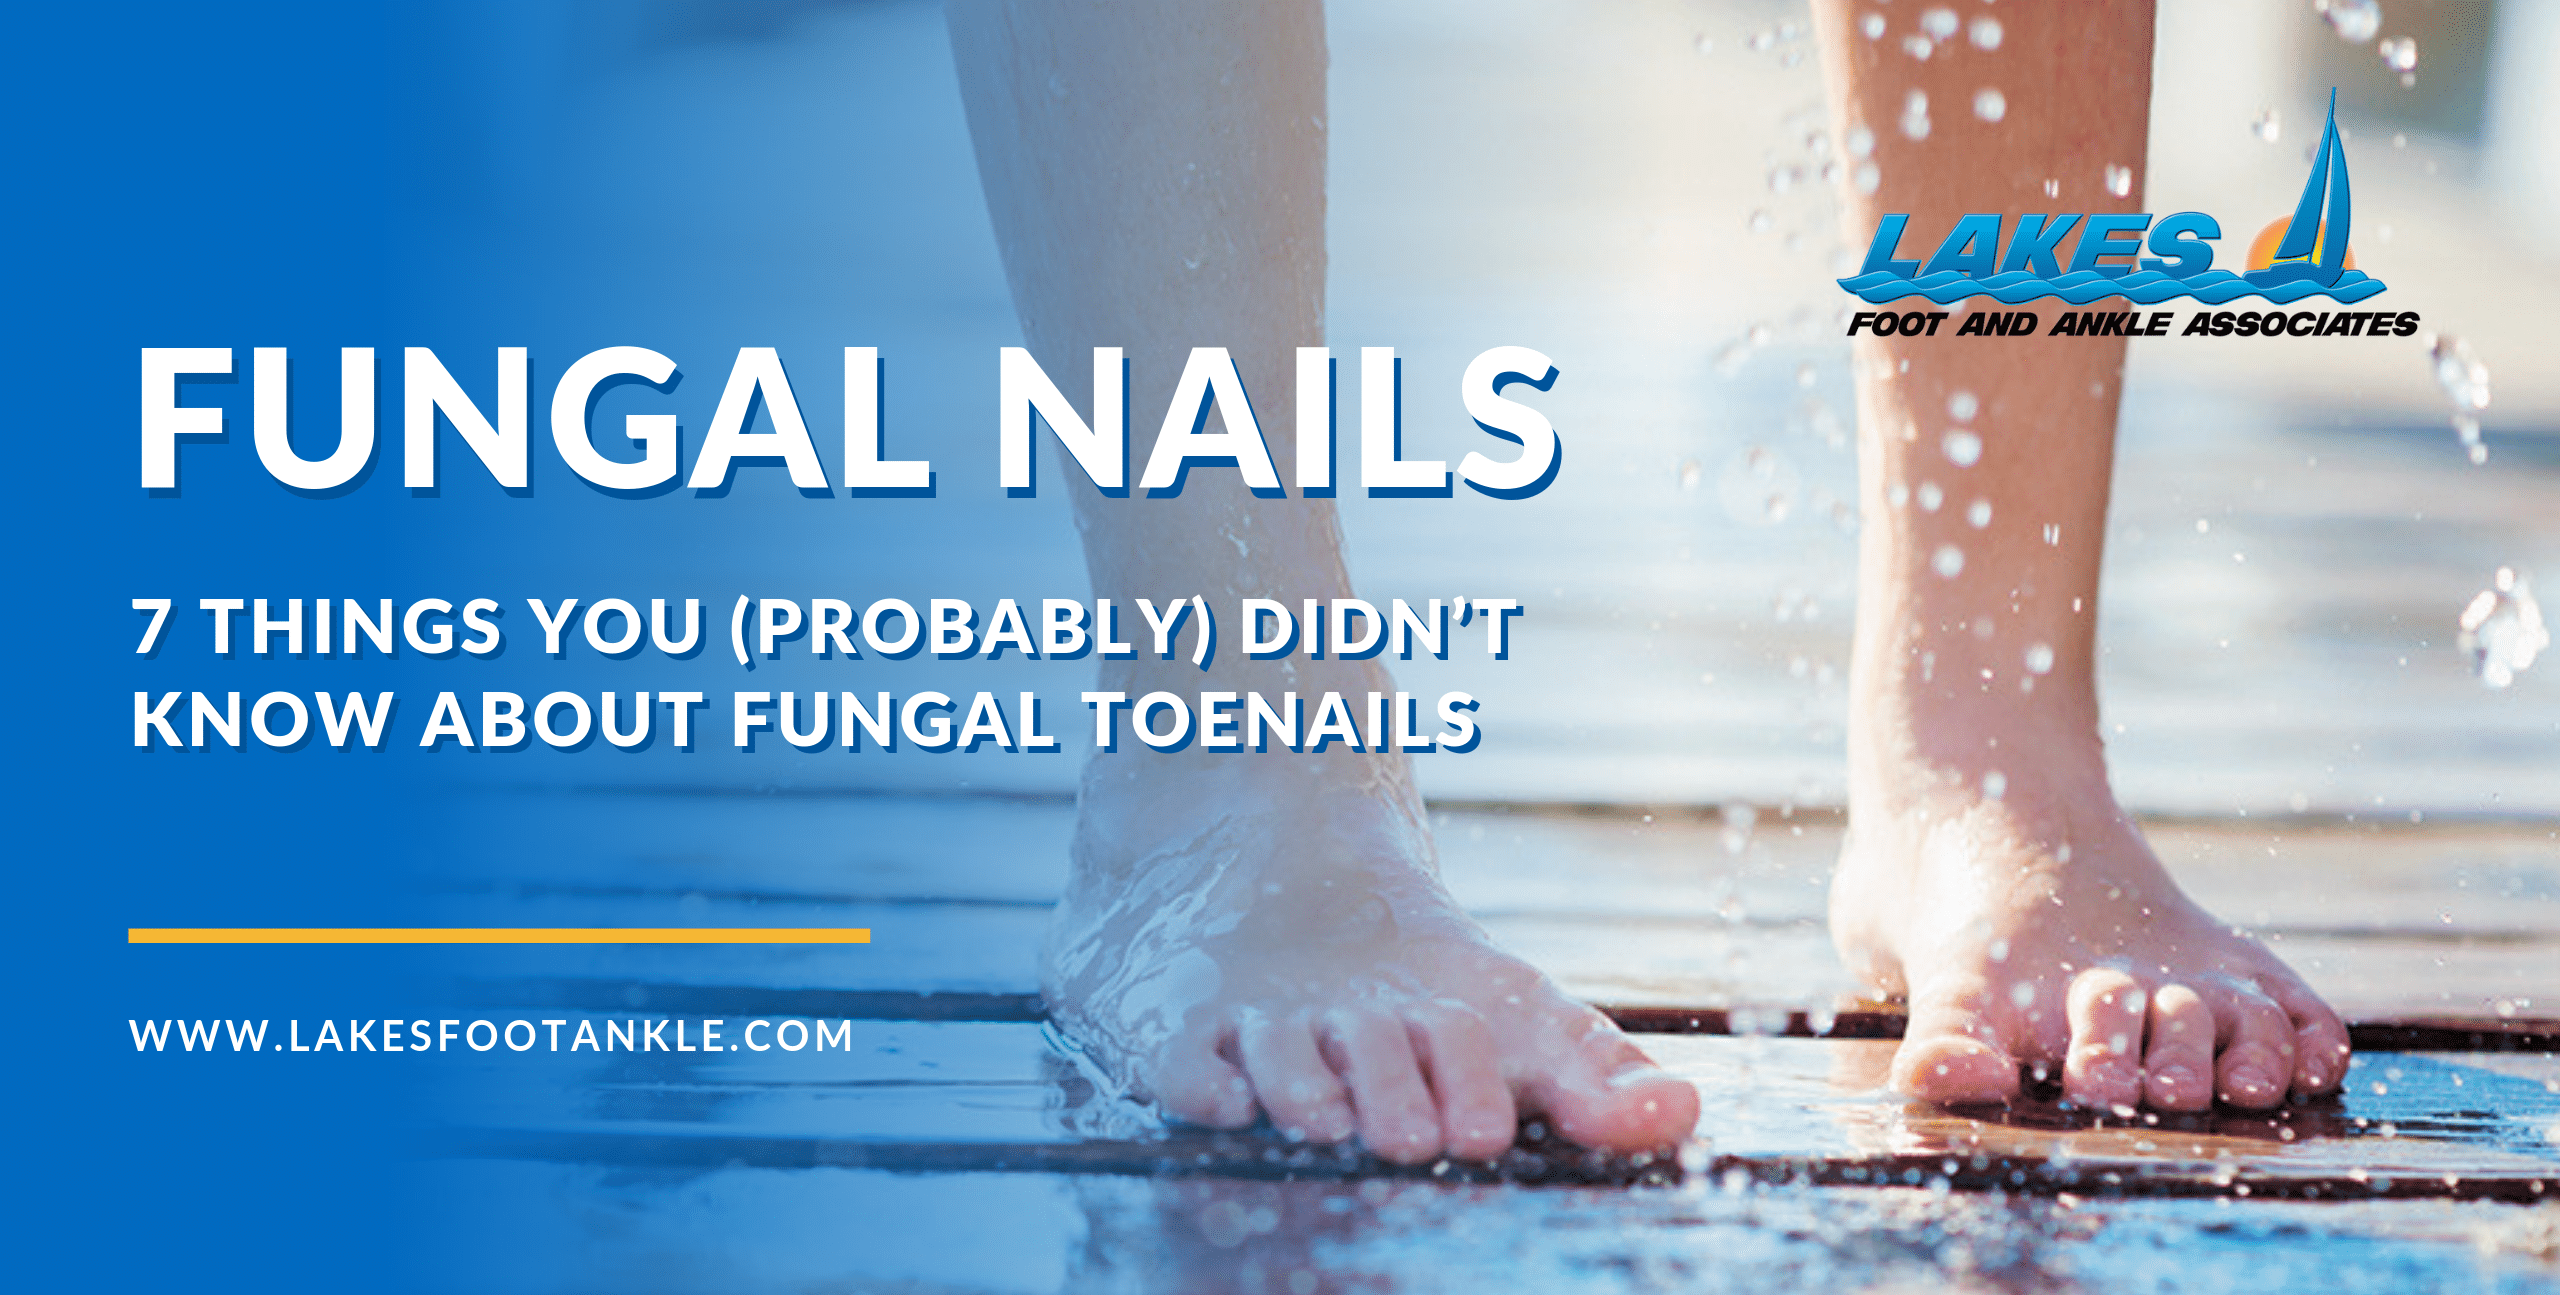 7 Thing You Probably Didn't Know About Fungal Toenails